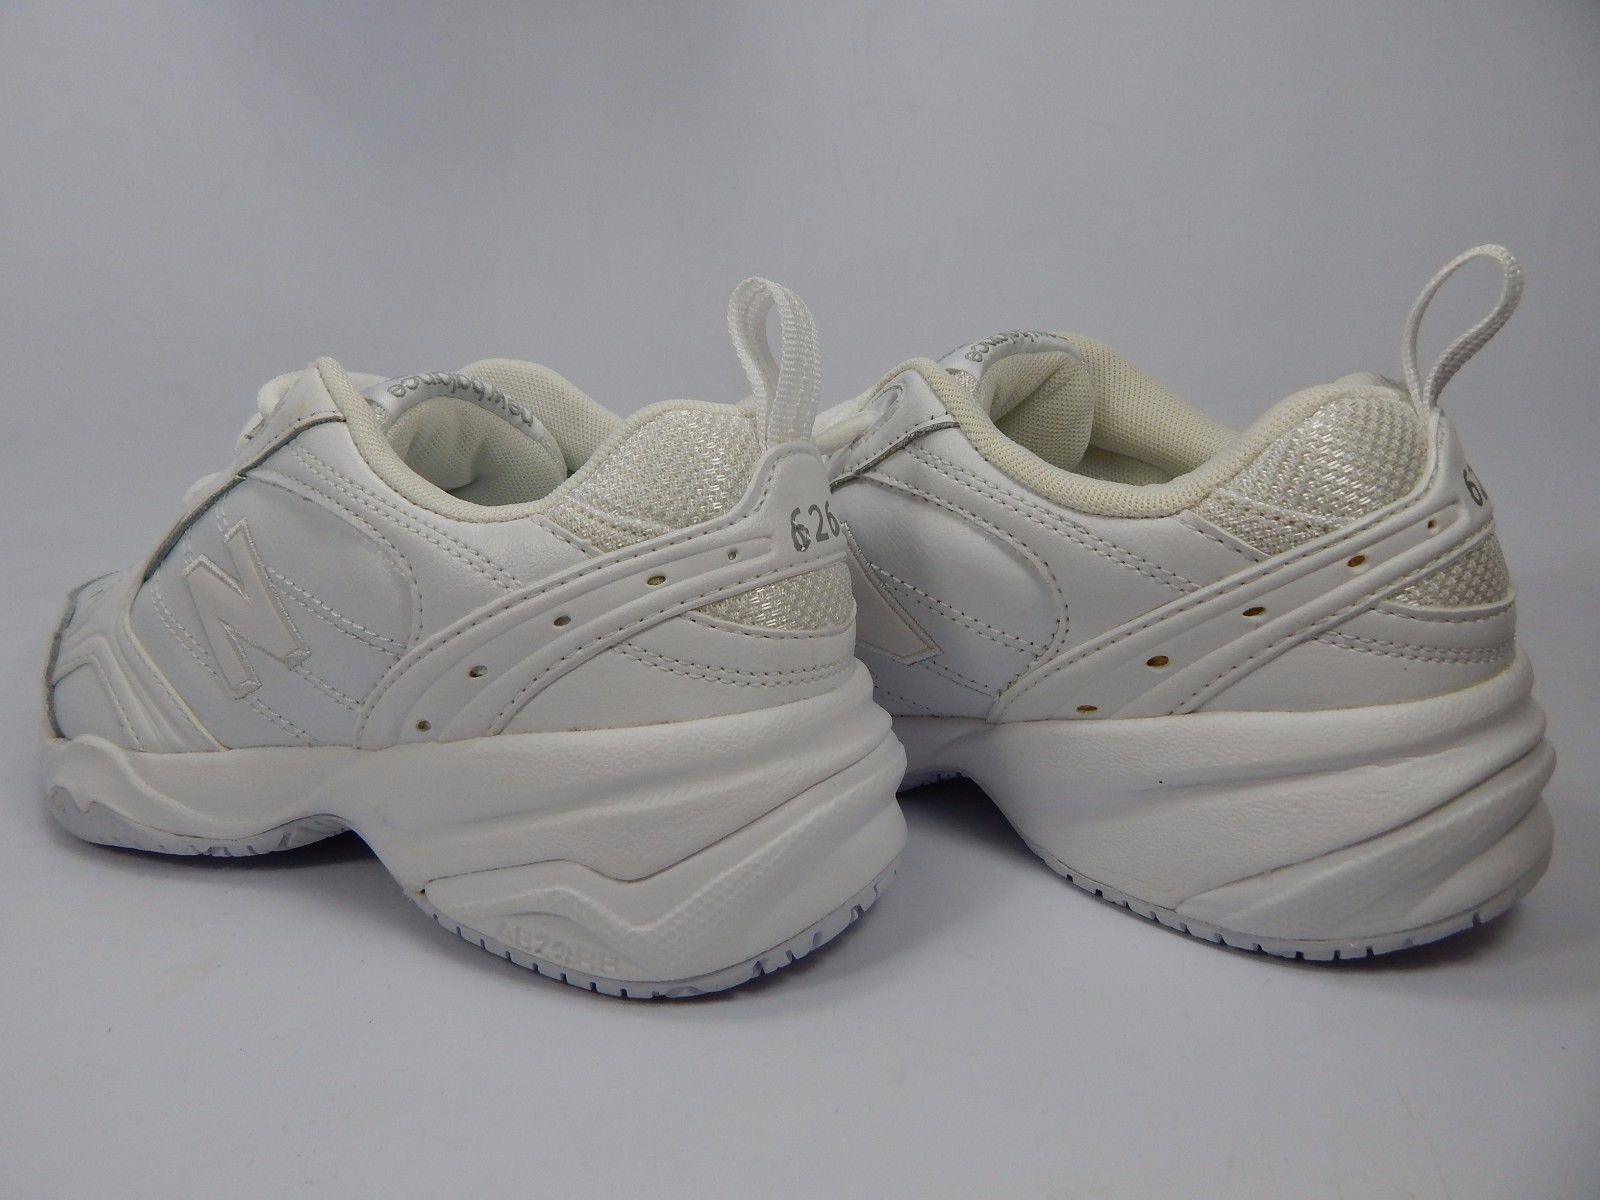 New Balance 626 Women's Cross Training Shoes Size US 7 M (B) EU 37.5 WX626WT